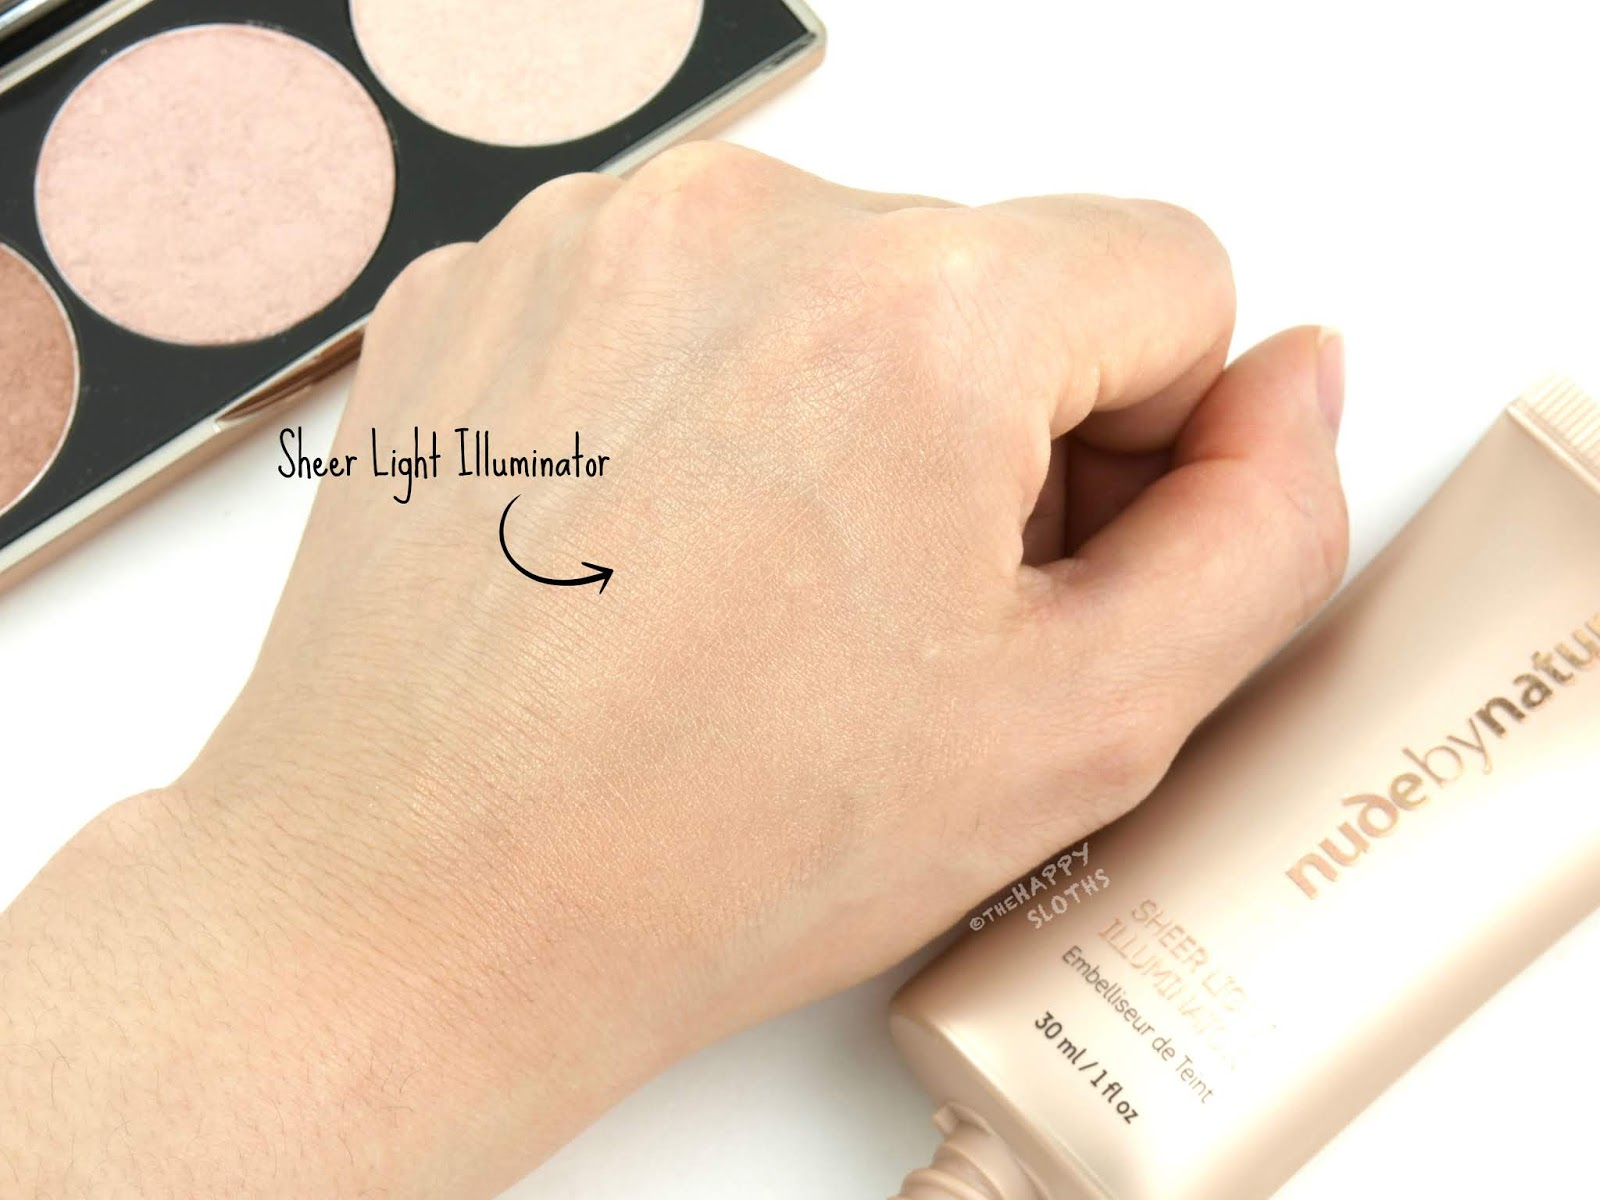 Nude by Nature | Sheer Light Illuminator: Review and Swatches